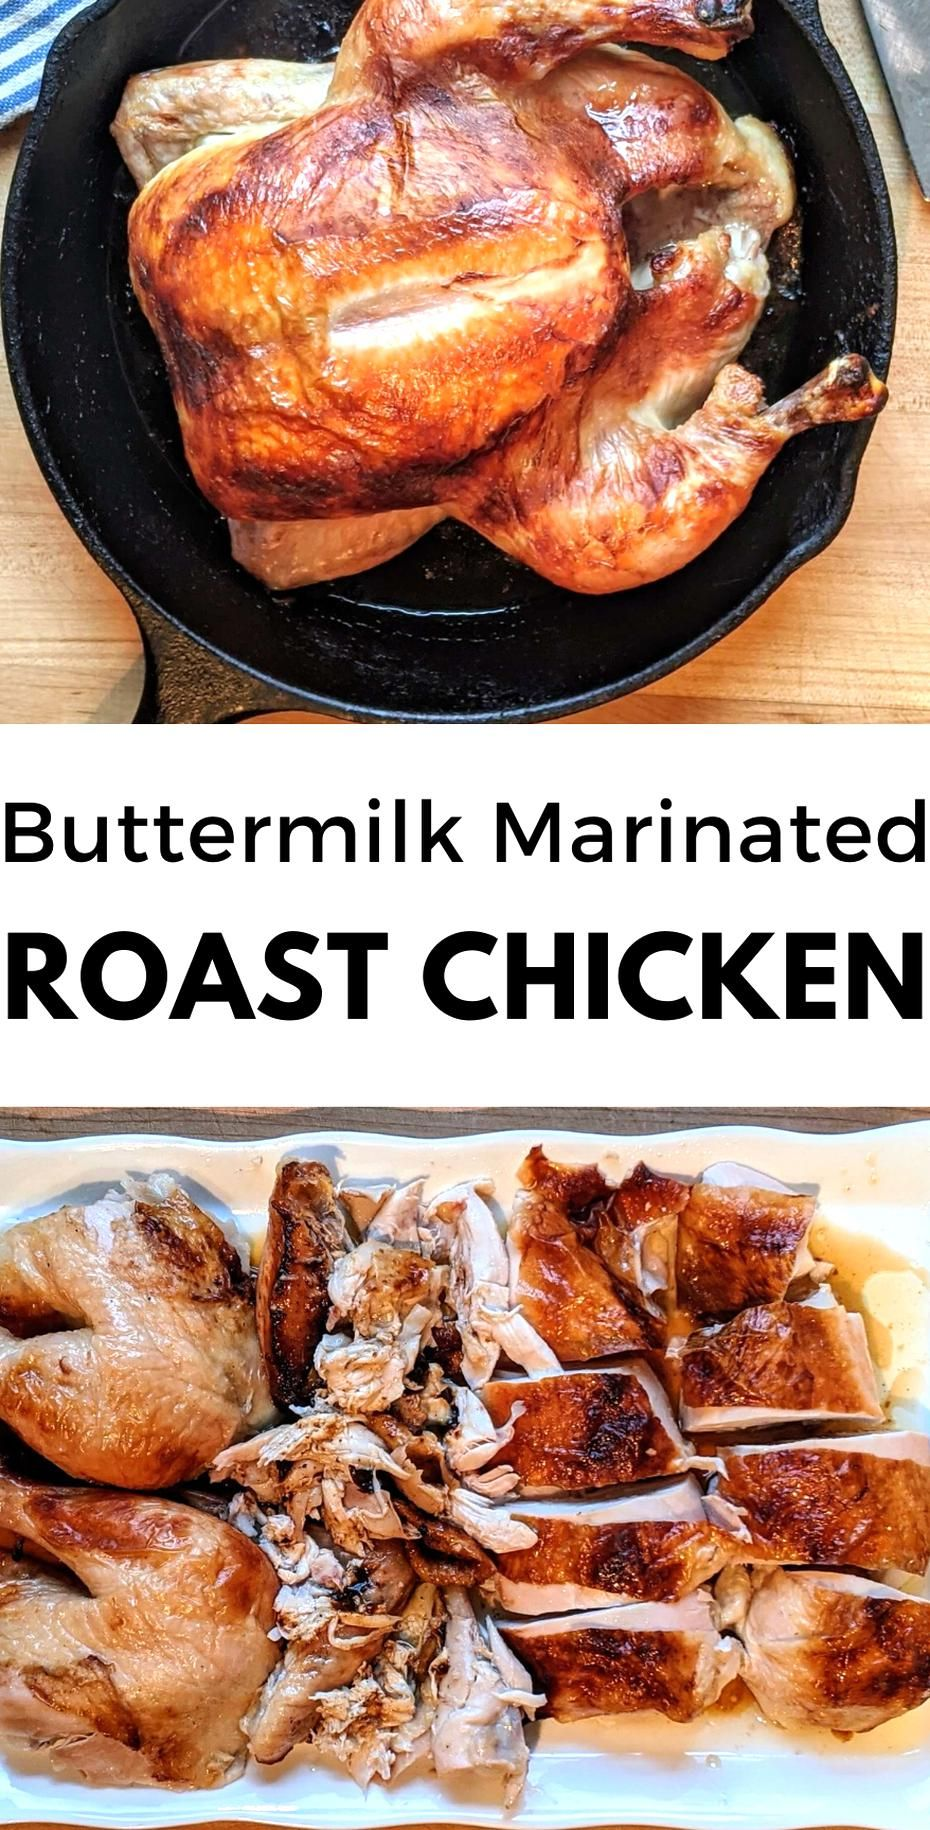 Simple Buttermilk Marinated Roast Chicken For A Perfect Bird Every Time This Easy Oven R In 2020 Whole Chicken Recipes Whole Roasted Chicken Oven Roasted Whole Chicken